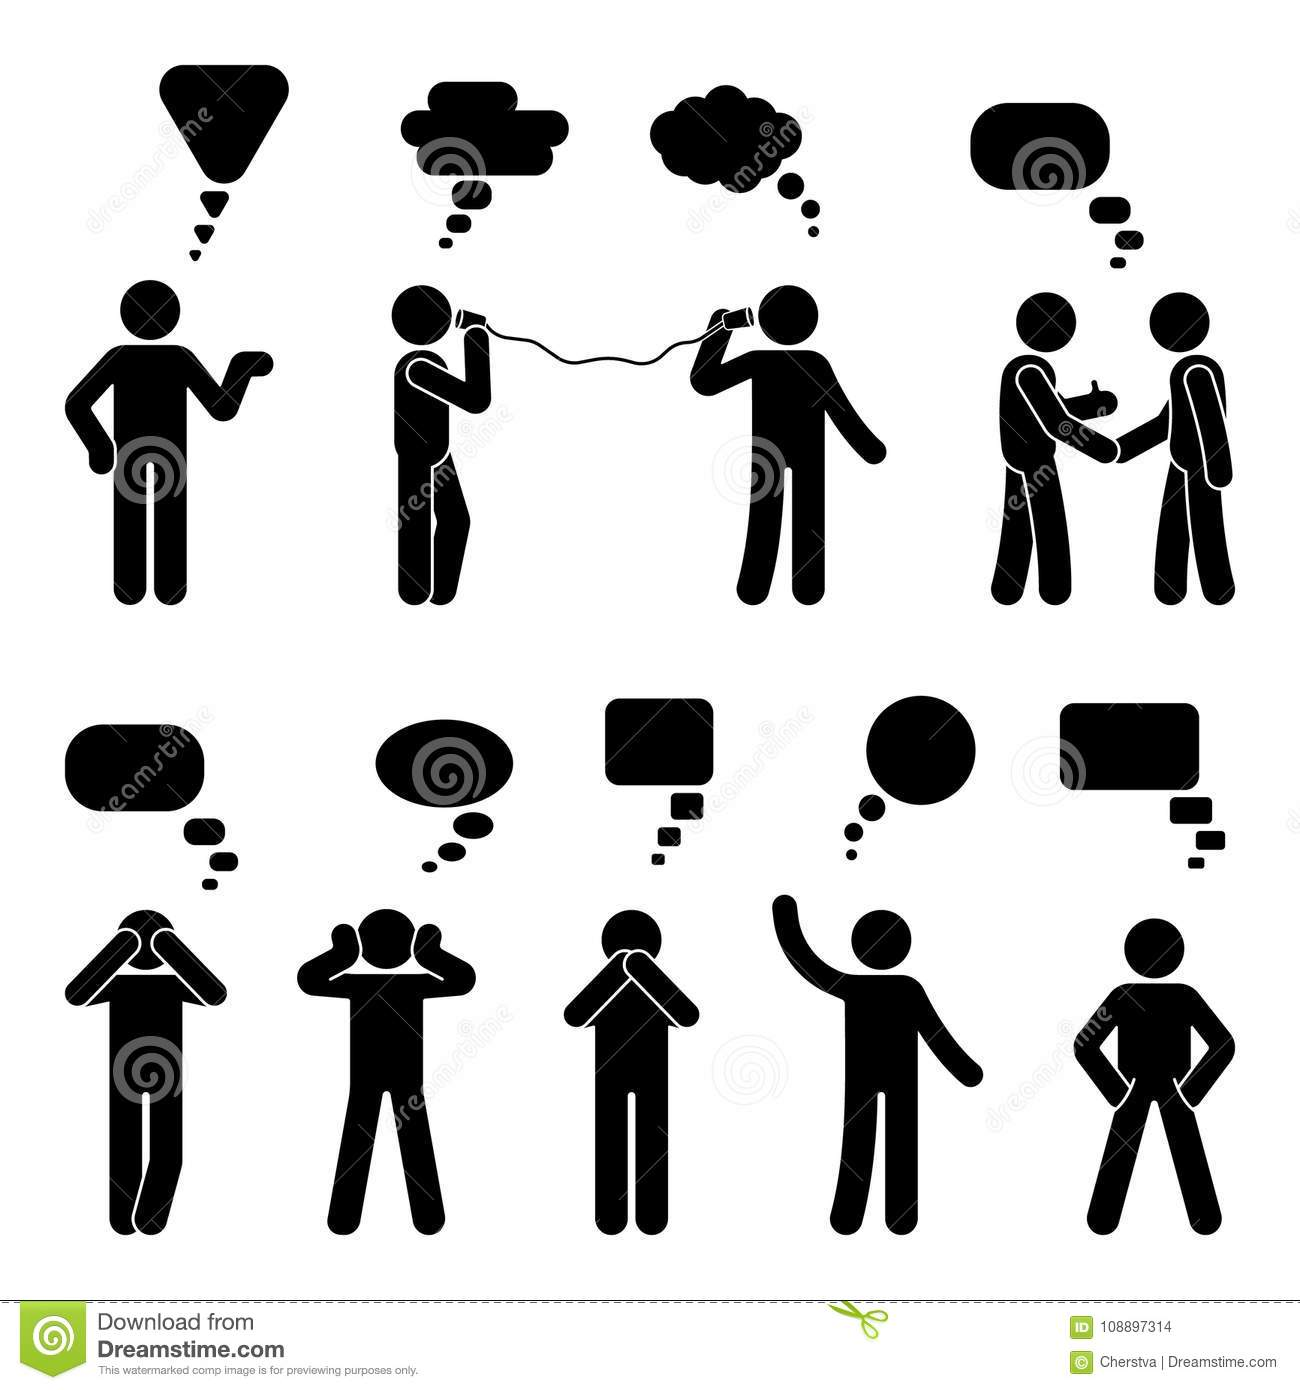 Stick figure dialog speech bubbles set. Talking, thinking, communicating body language man conversation icon pictogram.